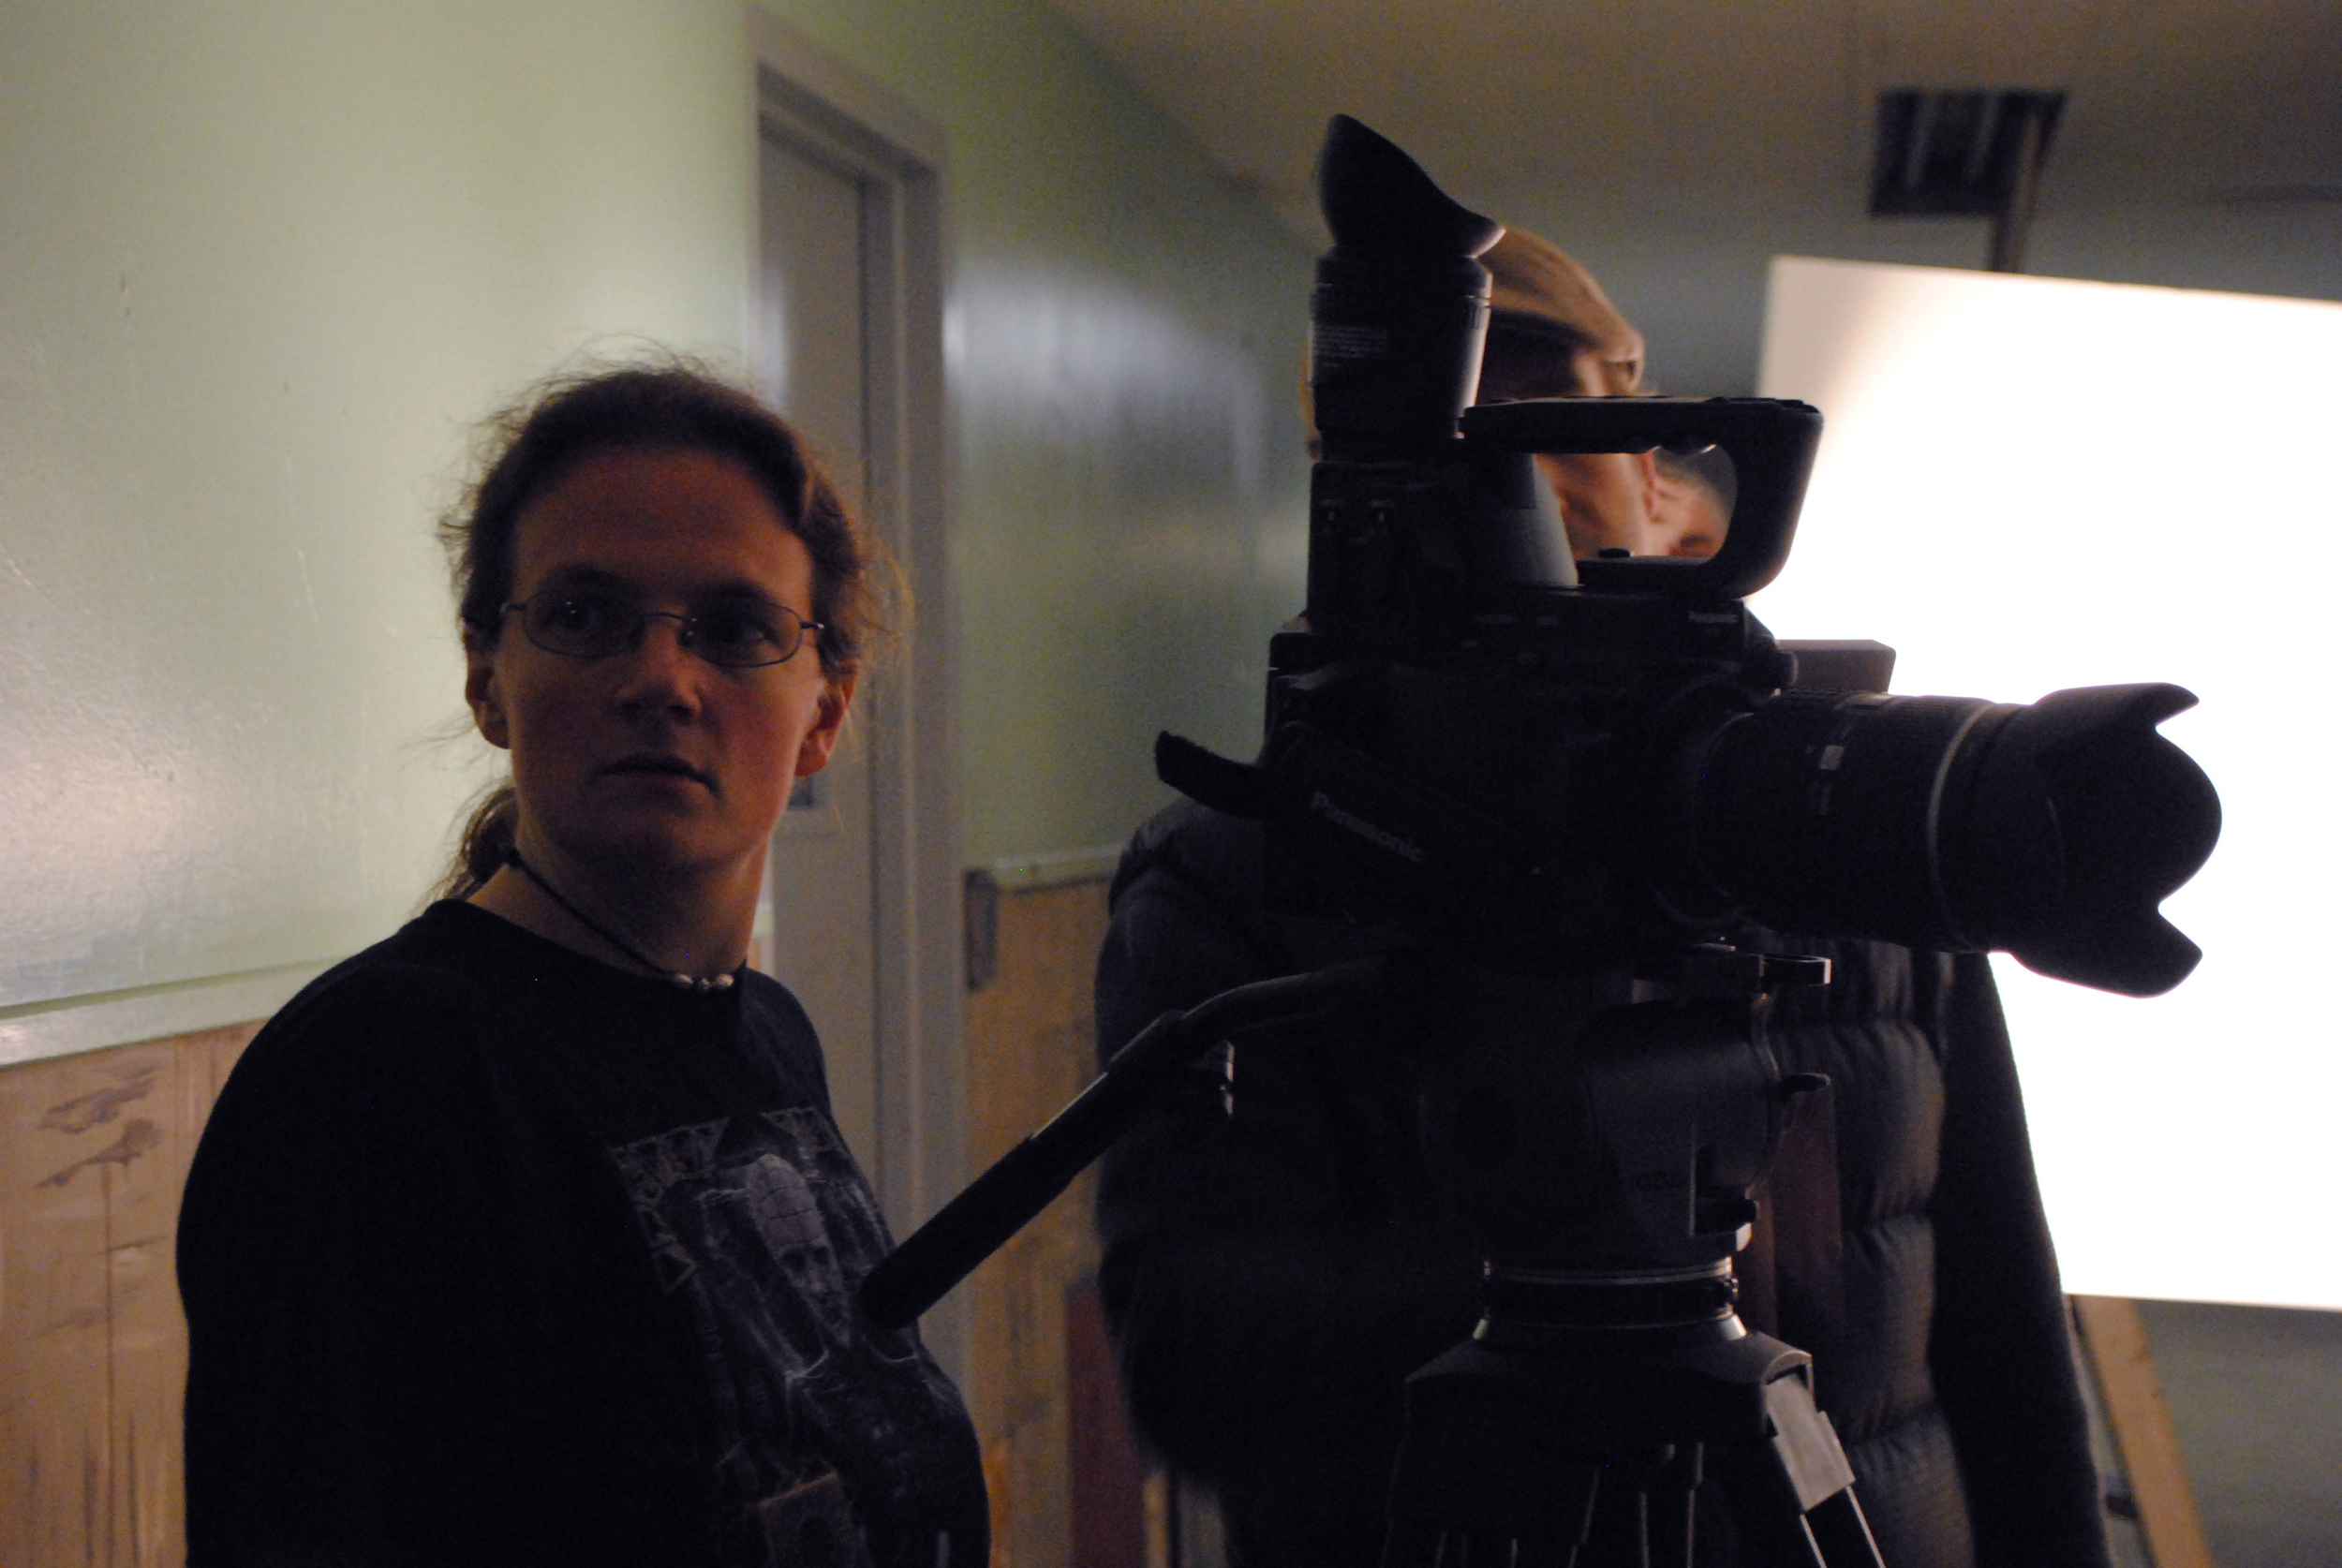 Co-director Lori Bowen is listening intently to an actor's question.